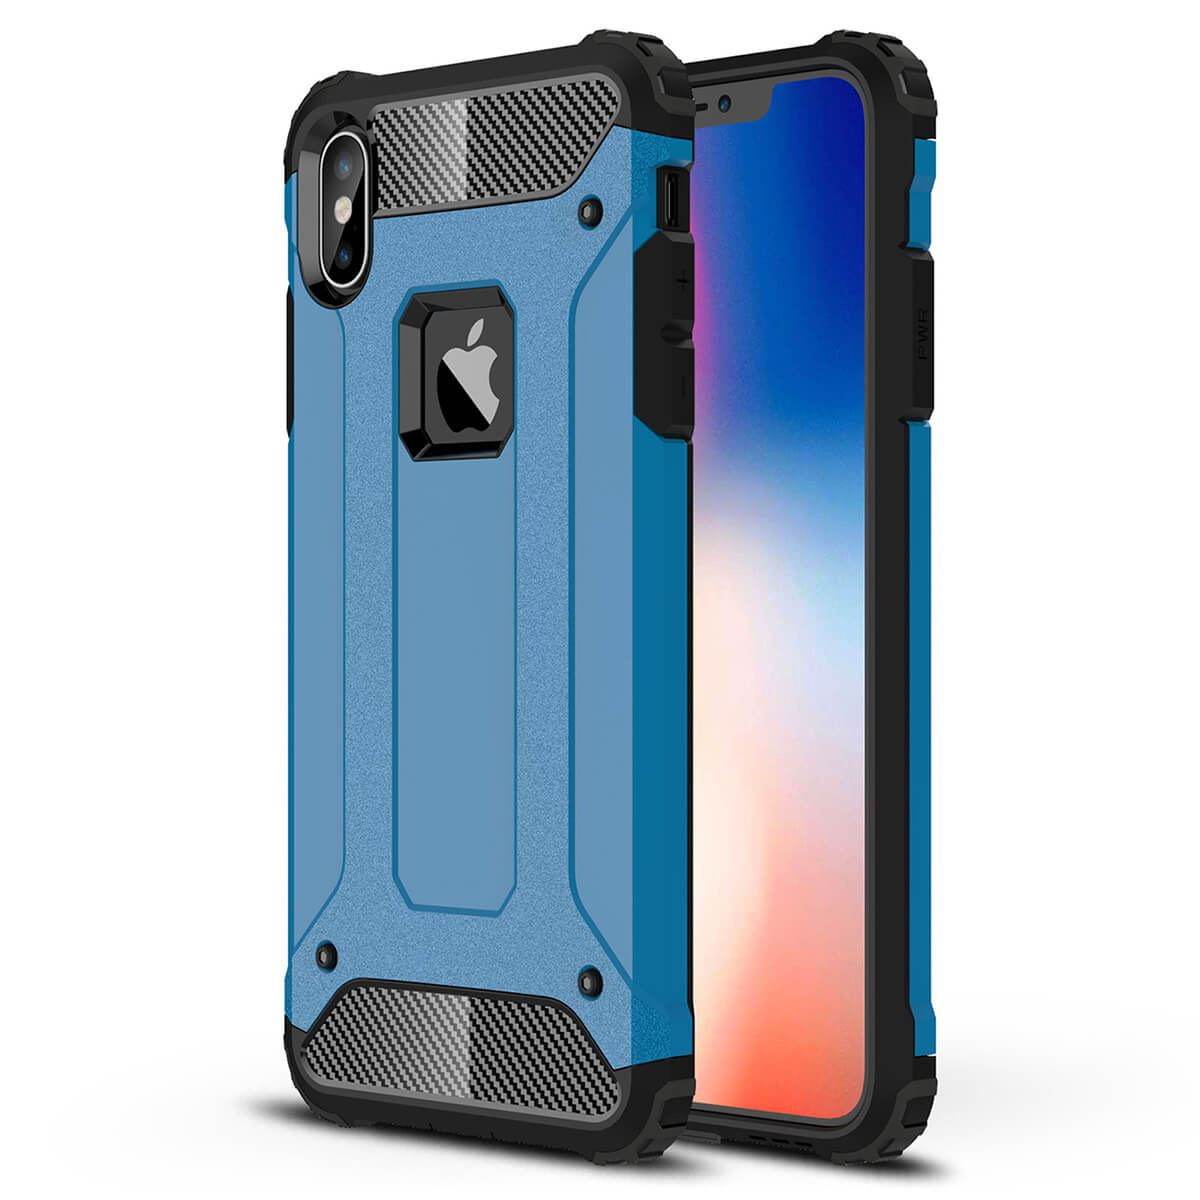 Shockproof-Bumper-Case-For-Apple-iPhone-10-X-8-7-Plus-6s-5s-Hybrid-Armor-Rugged thumbnail 7